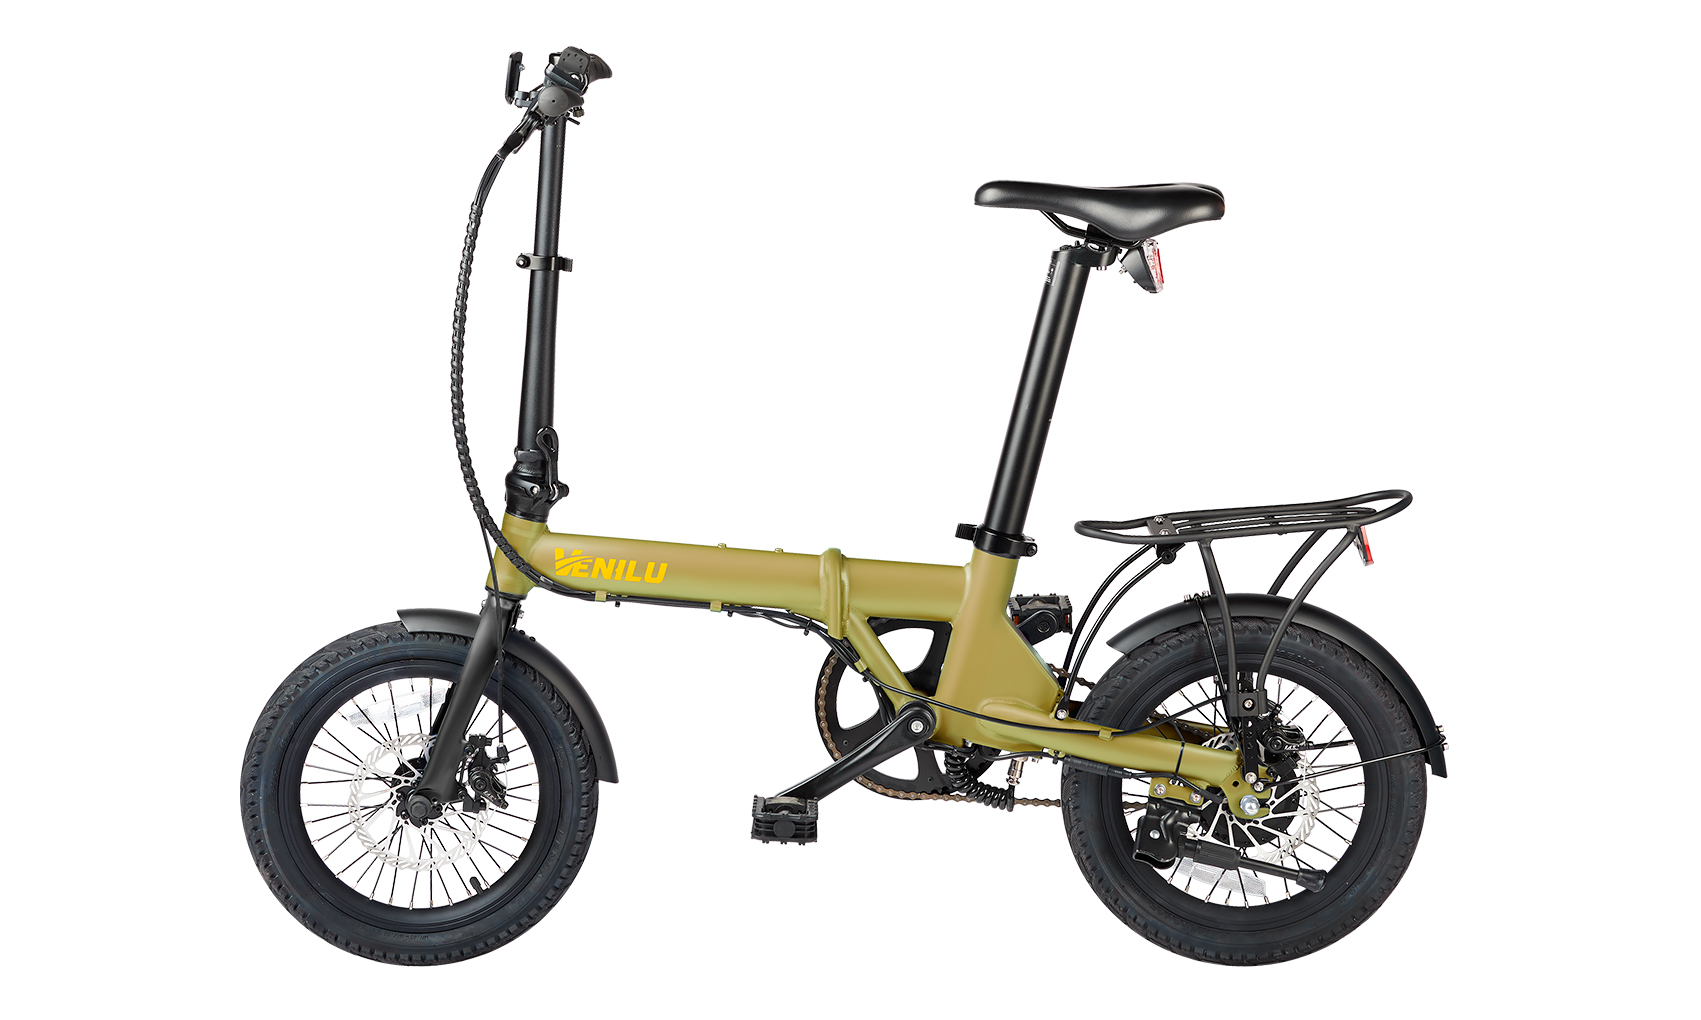 Venilu Urbana Kaki – The Lightest Folding E-Bike 16″ 13,6kg